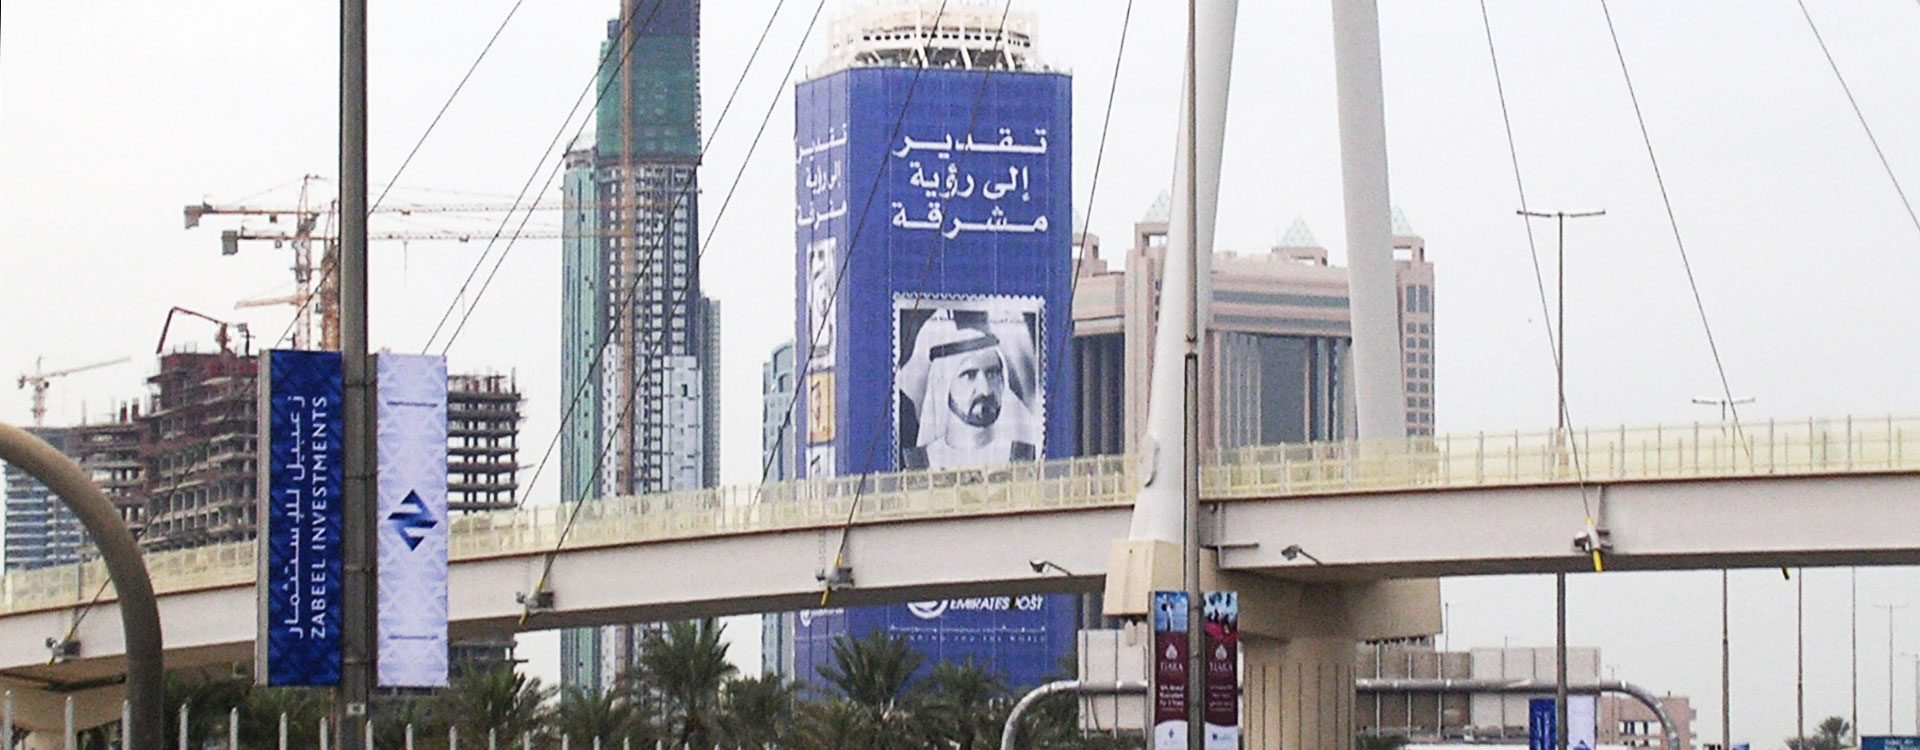 Kleinhempel Large Format Printing World Trade Center Dubai Grossformatdruck Objektverhüllung